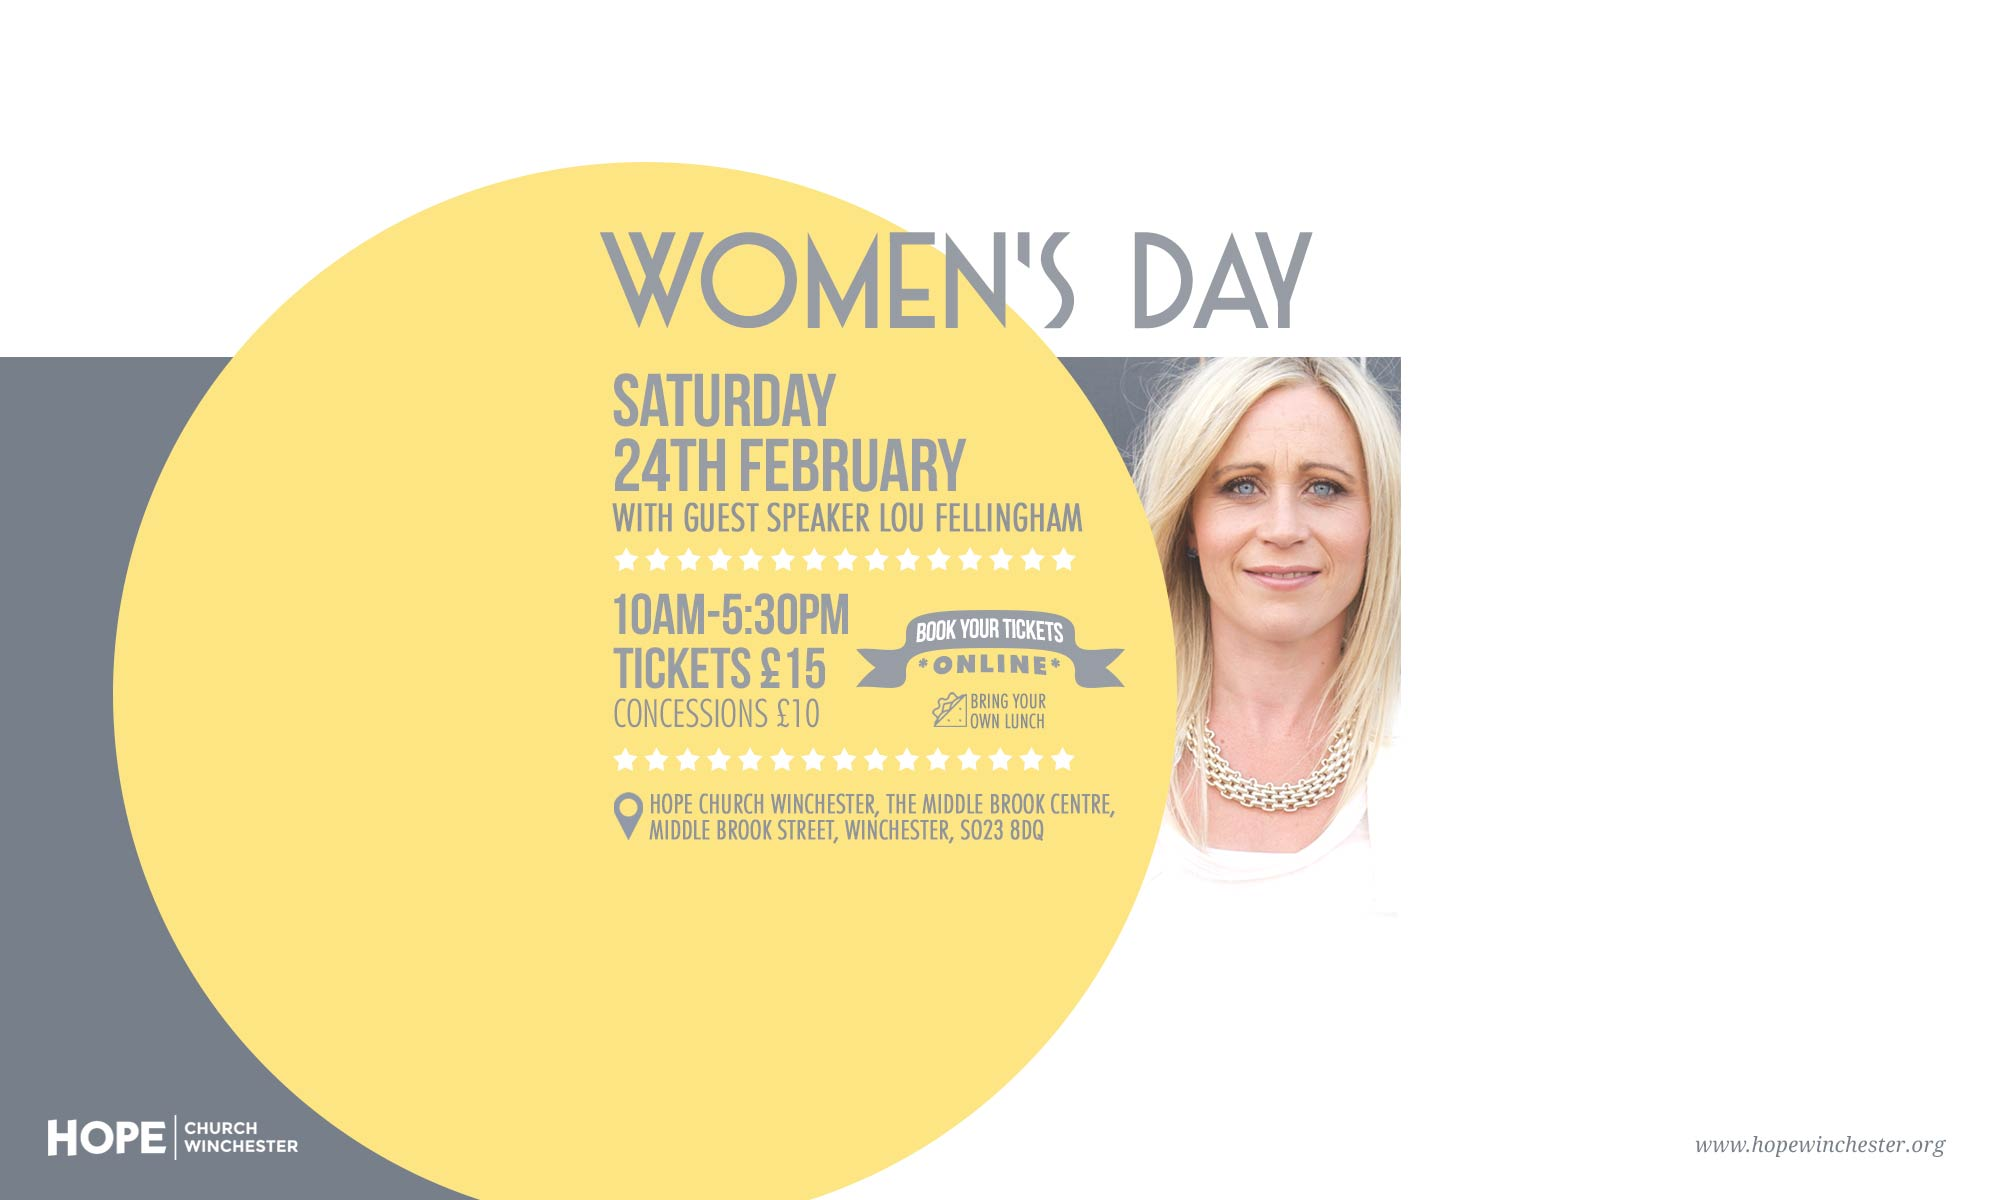 W-Home-WomensDay-2018